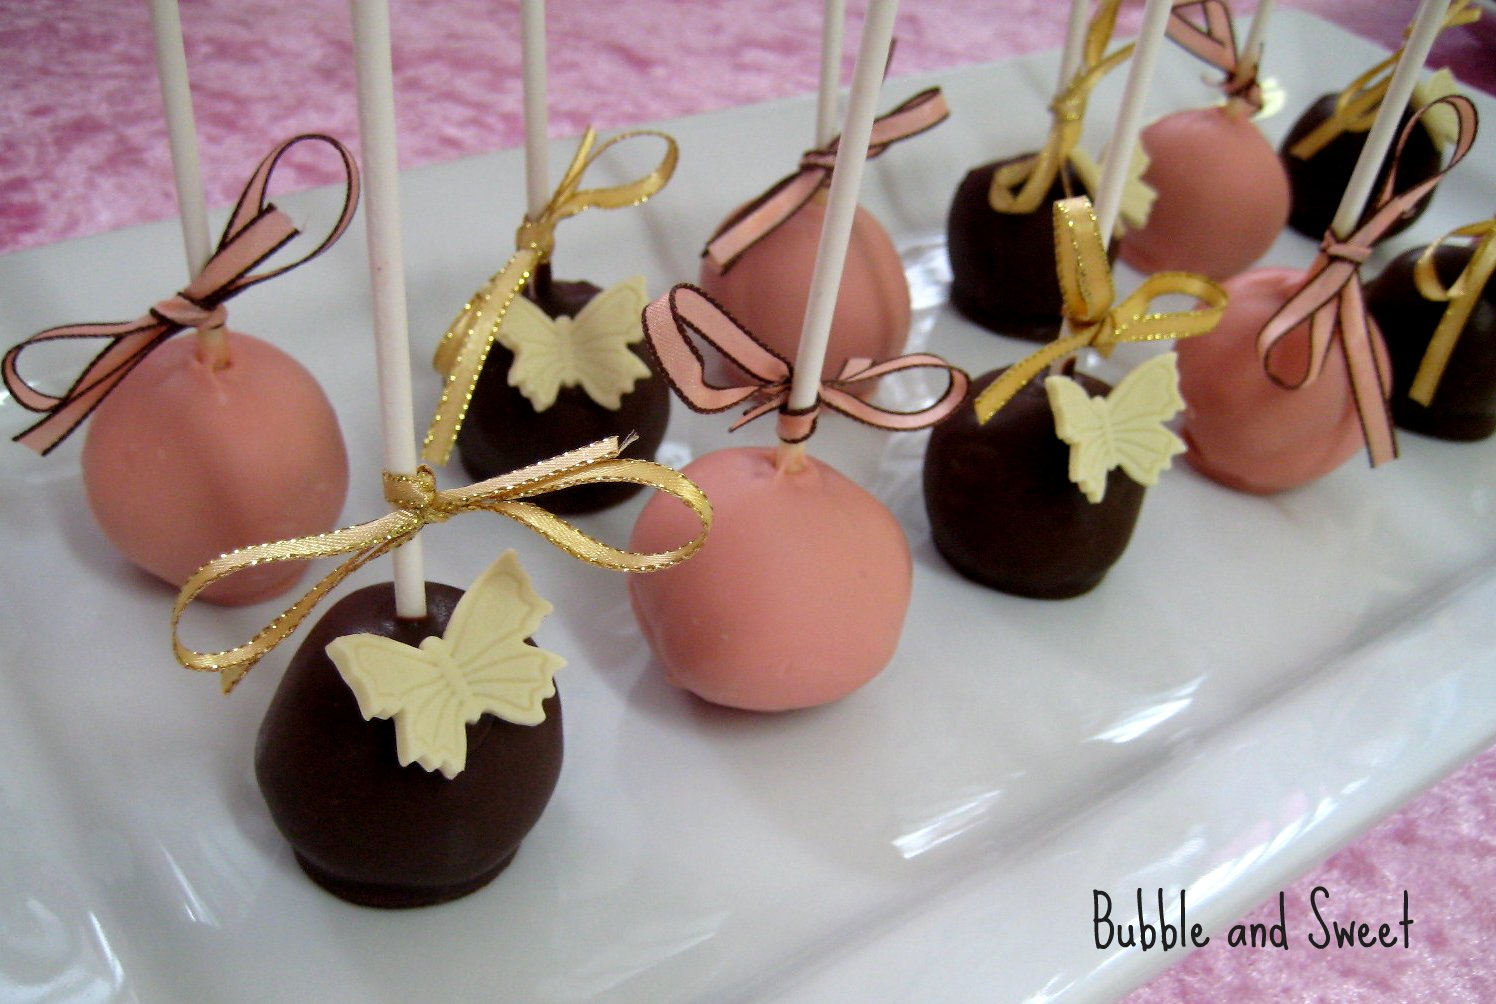 Bubble and Sweet: Cake Pop Classes in Brisbane